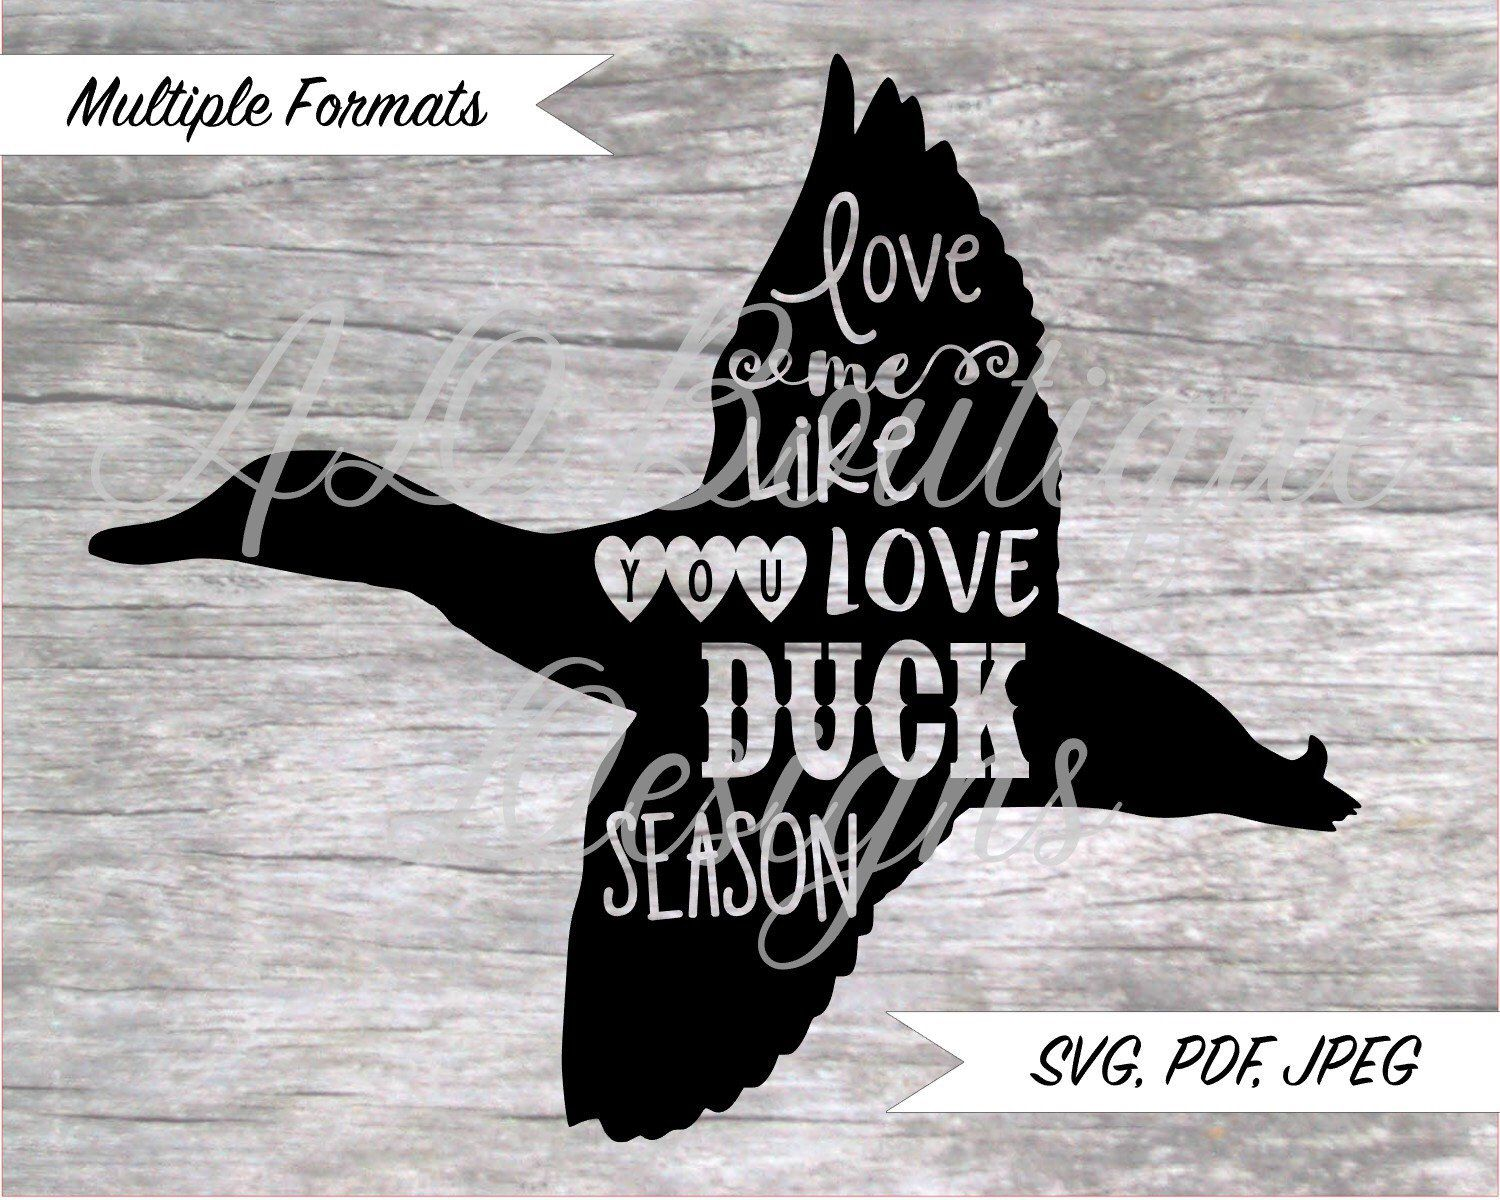 Download Love Me Like You Love Duck Season SVG Design | Love me ...